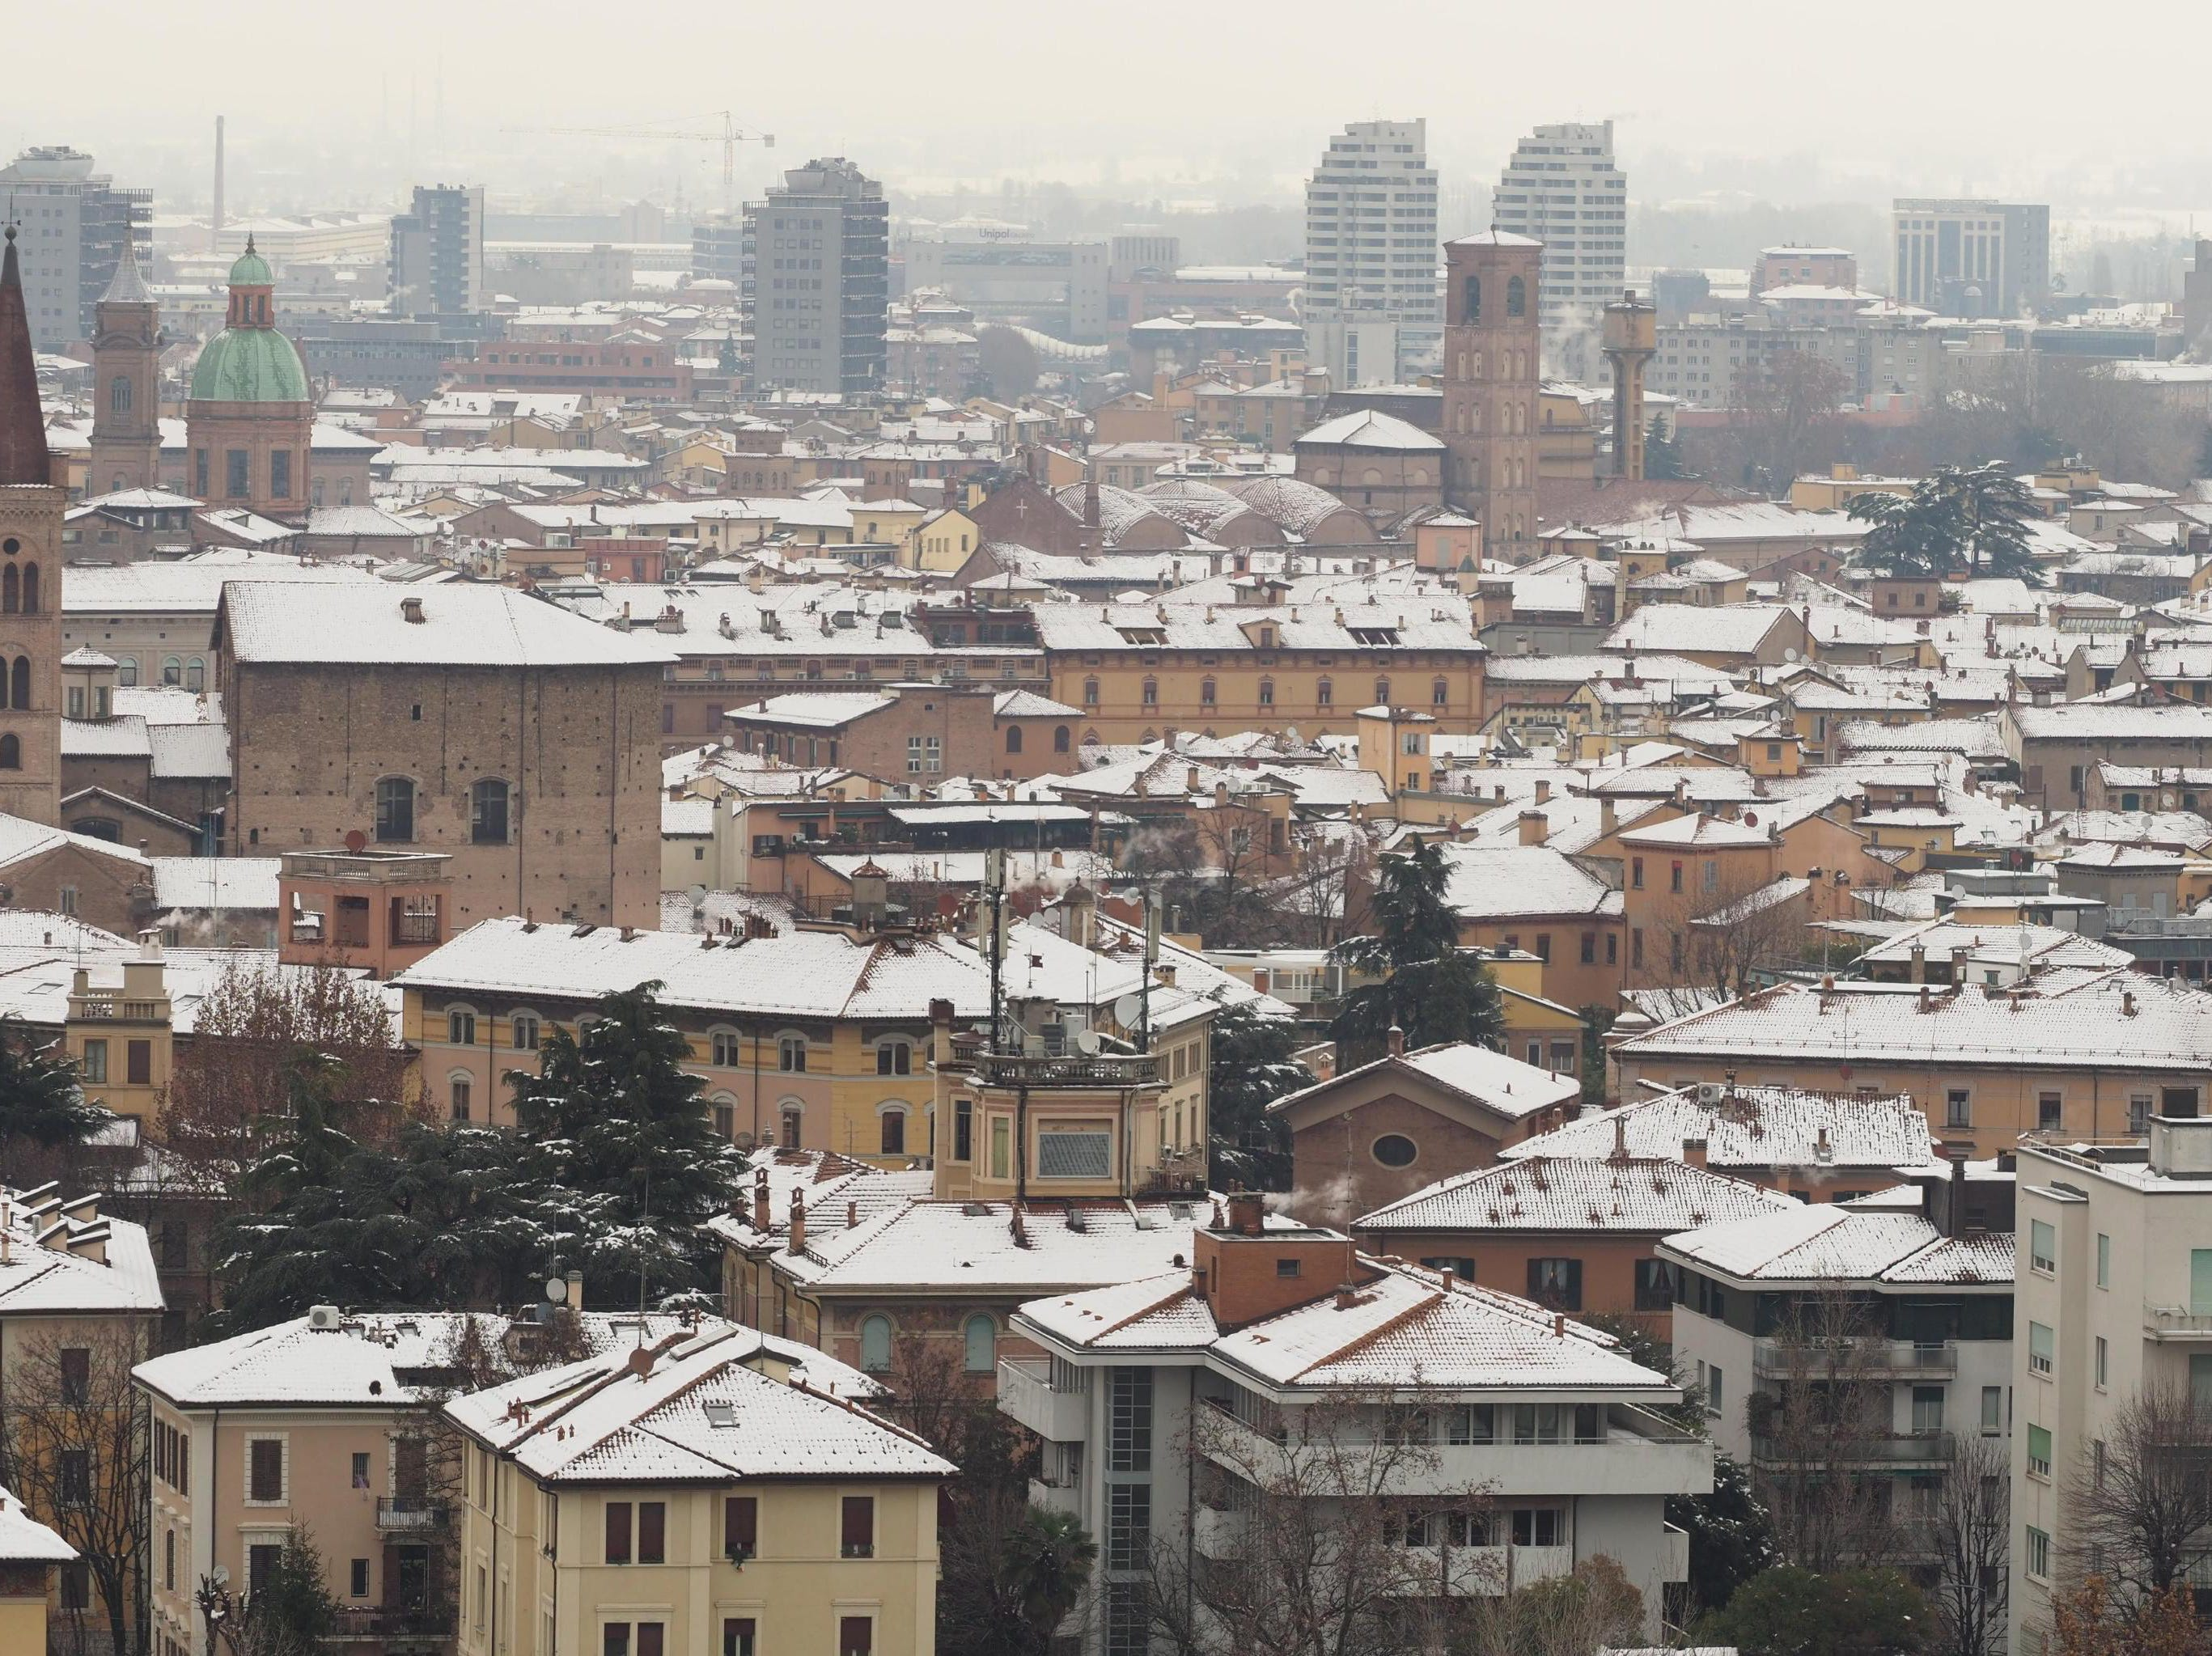 epa07237282 A general view of snow-covered buildings after snowfall in in Bologna, Italy, 17 December 2018.  EPA-EFE/GIORGIO BENVENUTI